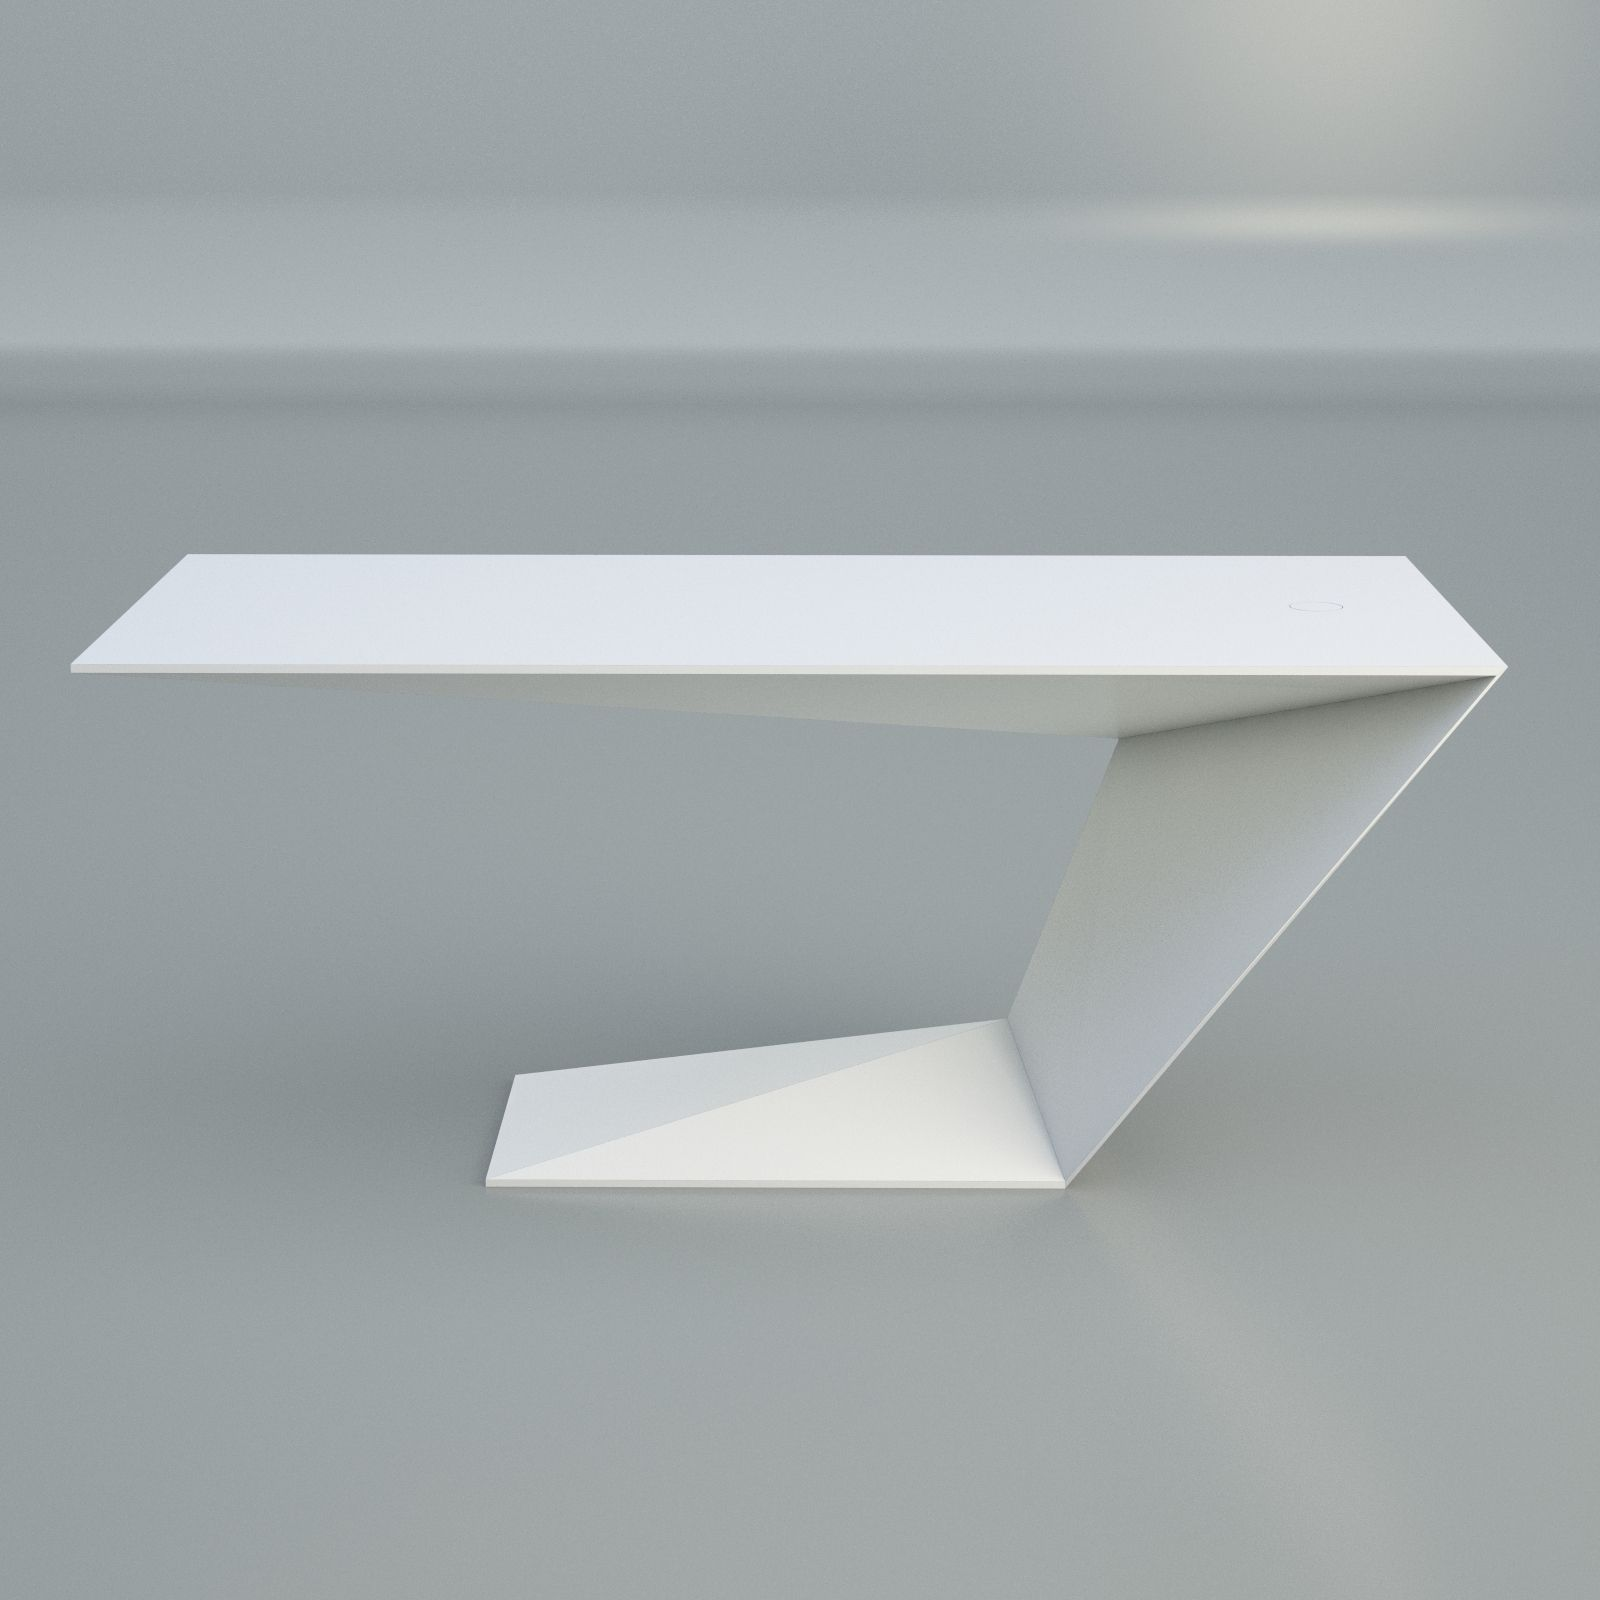 Furtif desk modern table roche bobois free vr ar low poly 3d model max ob - Roche bobois tables basses ...